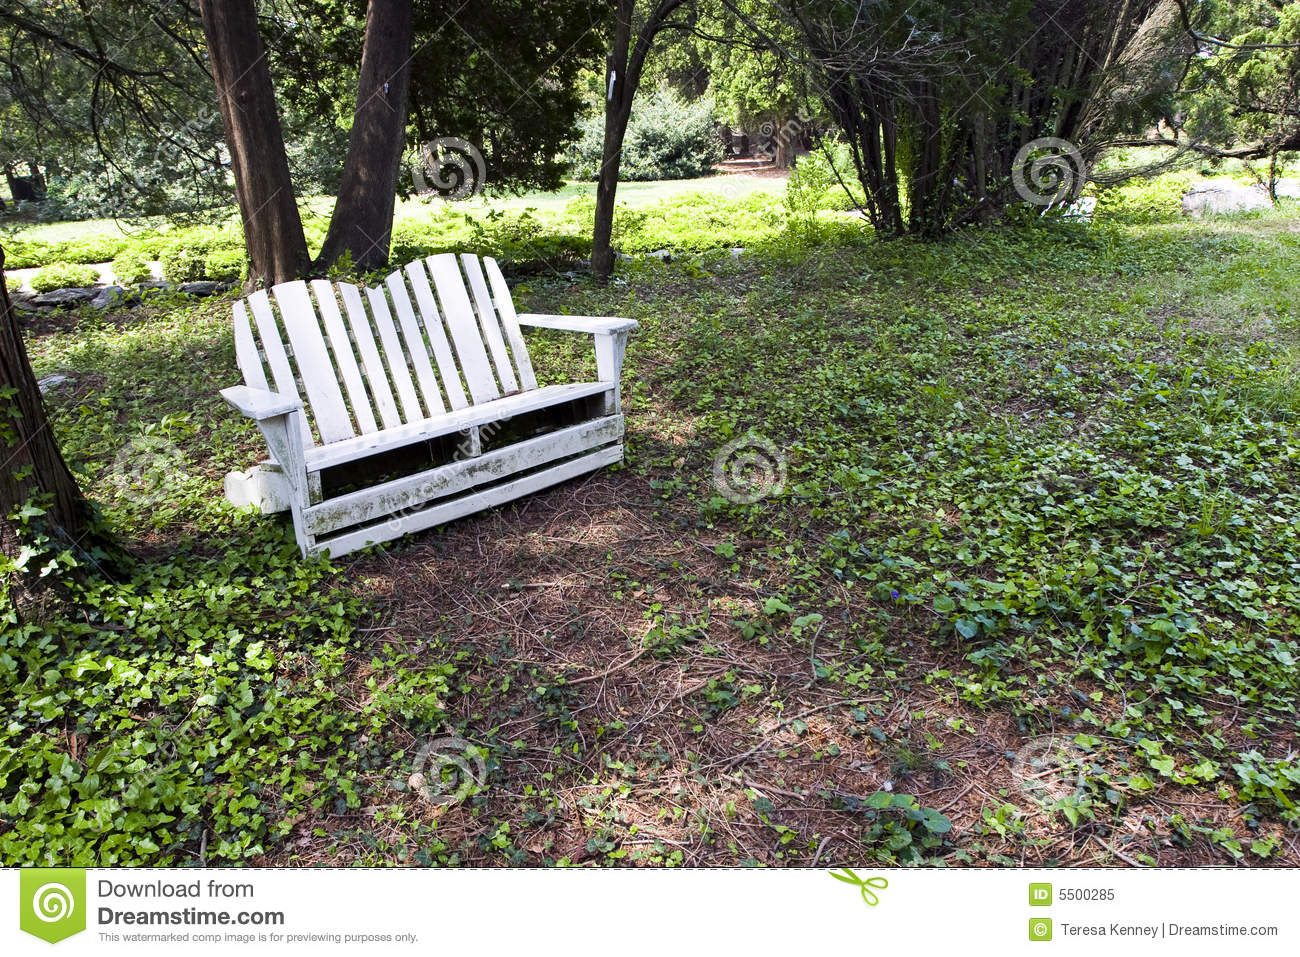 Backyard Sounds At Night : Relaxing backyard retreat featuring a white wooden seat surrounded by